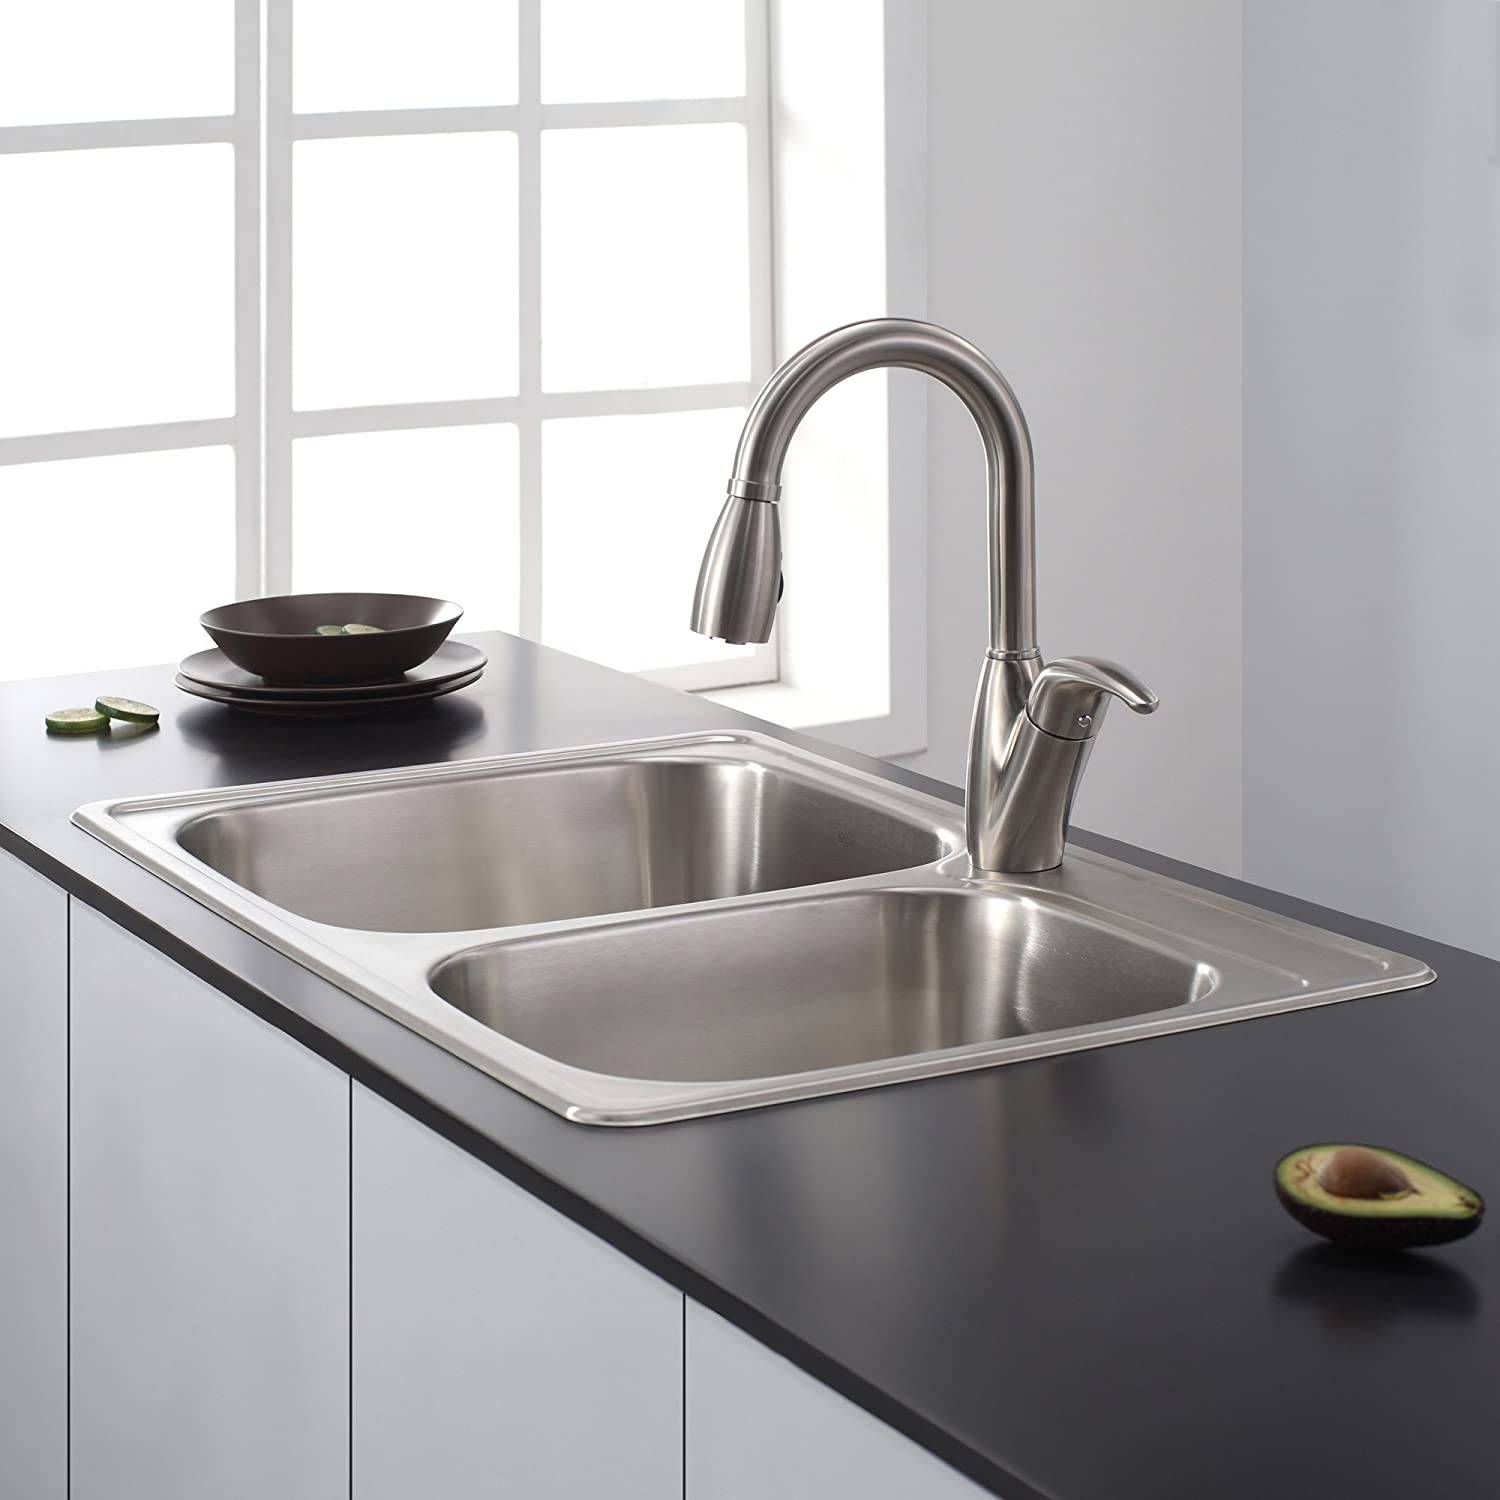 sink inch gauge steel by drop sinks kitchens in standard prevoir american bowl kitchen stainless